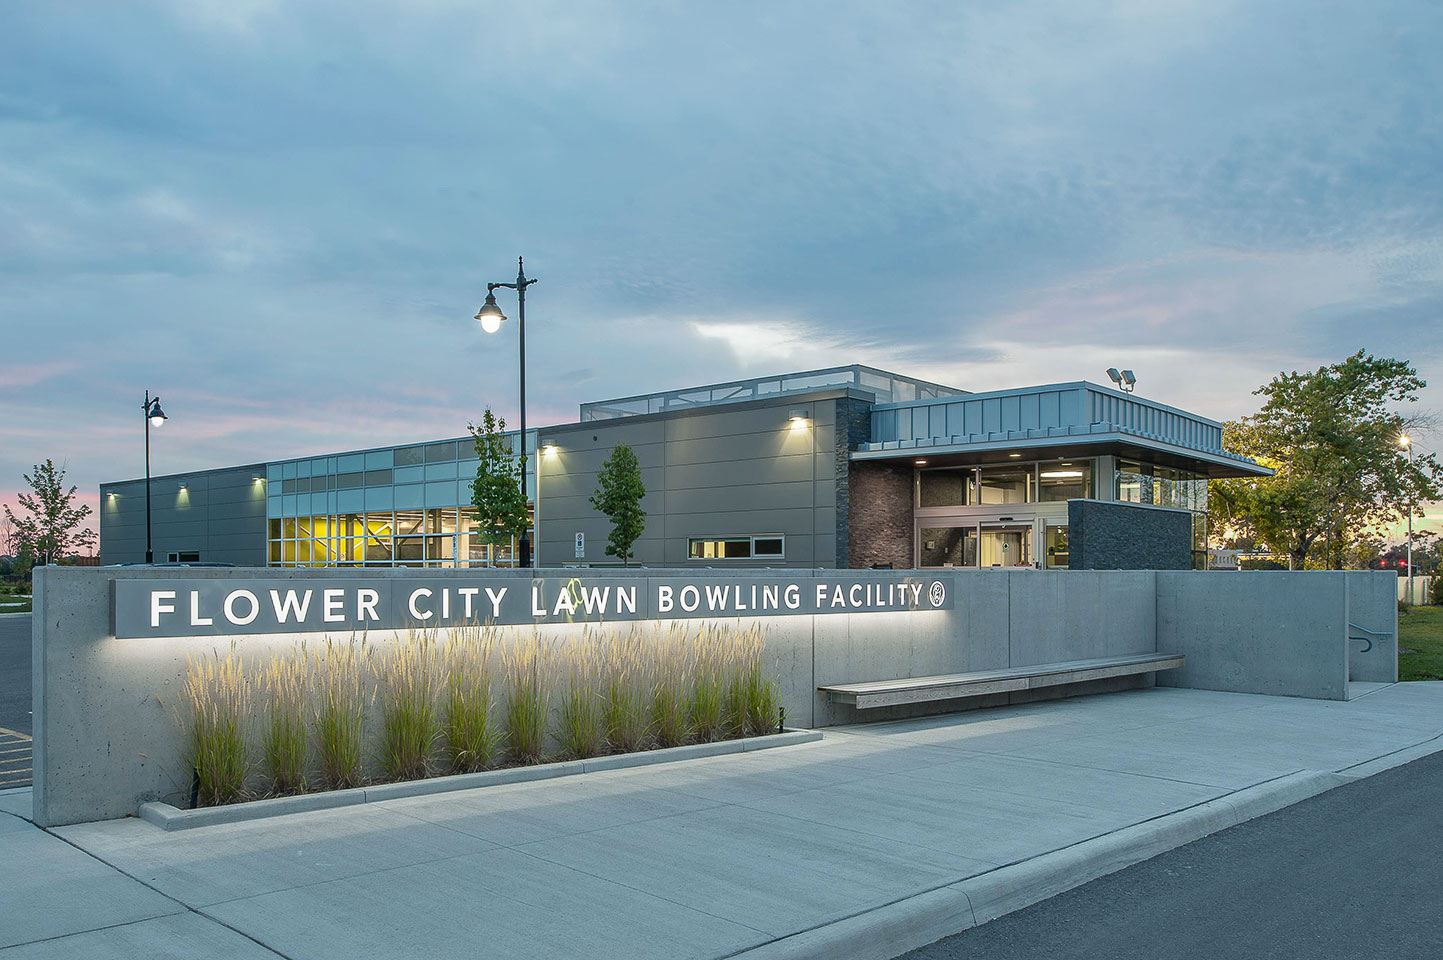 Flower City Lawn Bowling Facility, Brampton.